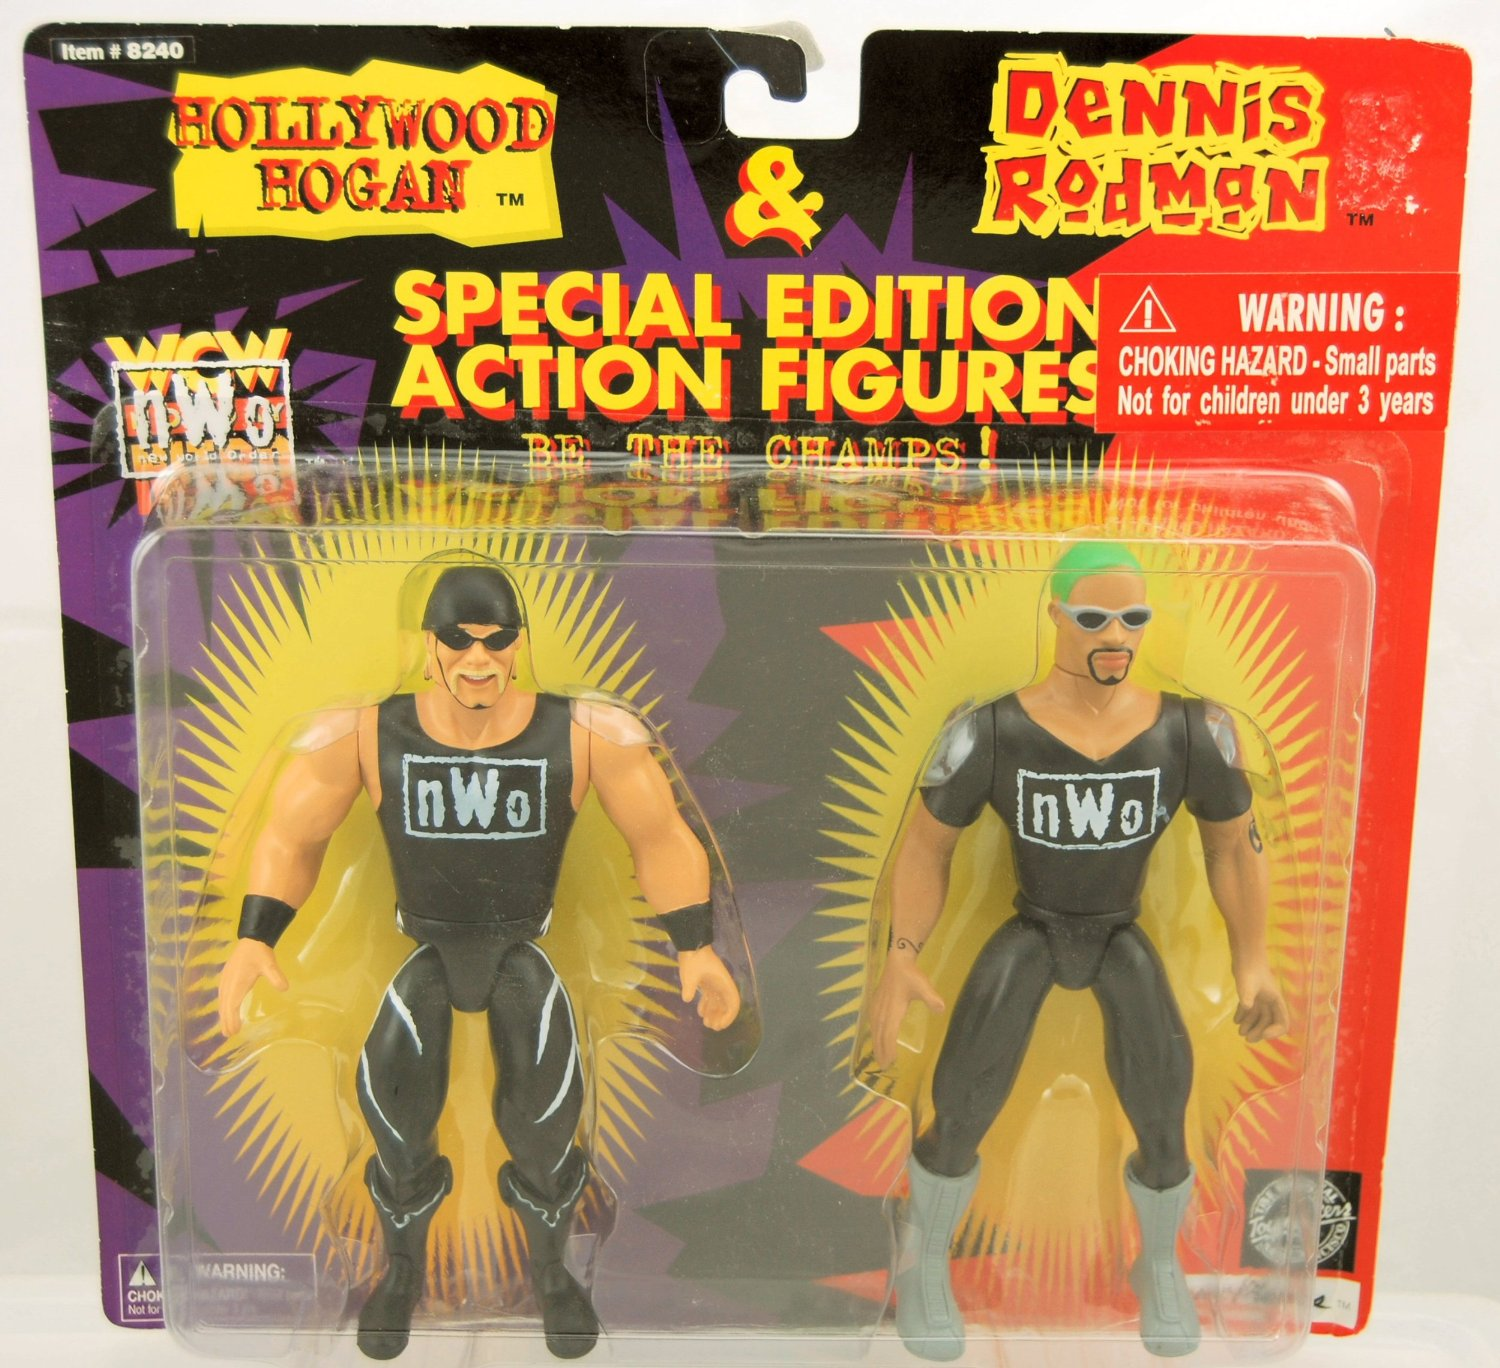 WCW NWO Dennis Rodman and Hollywood Hogan figures